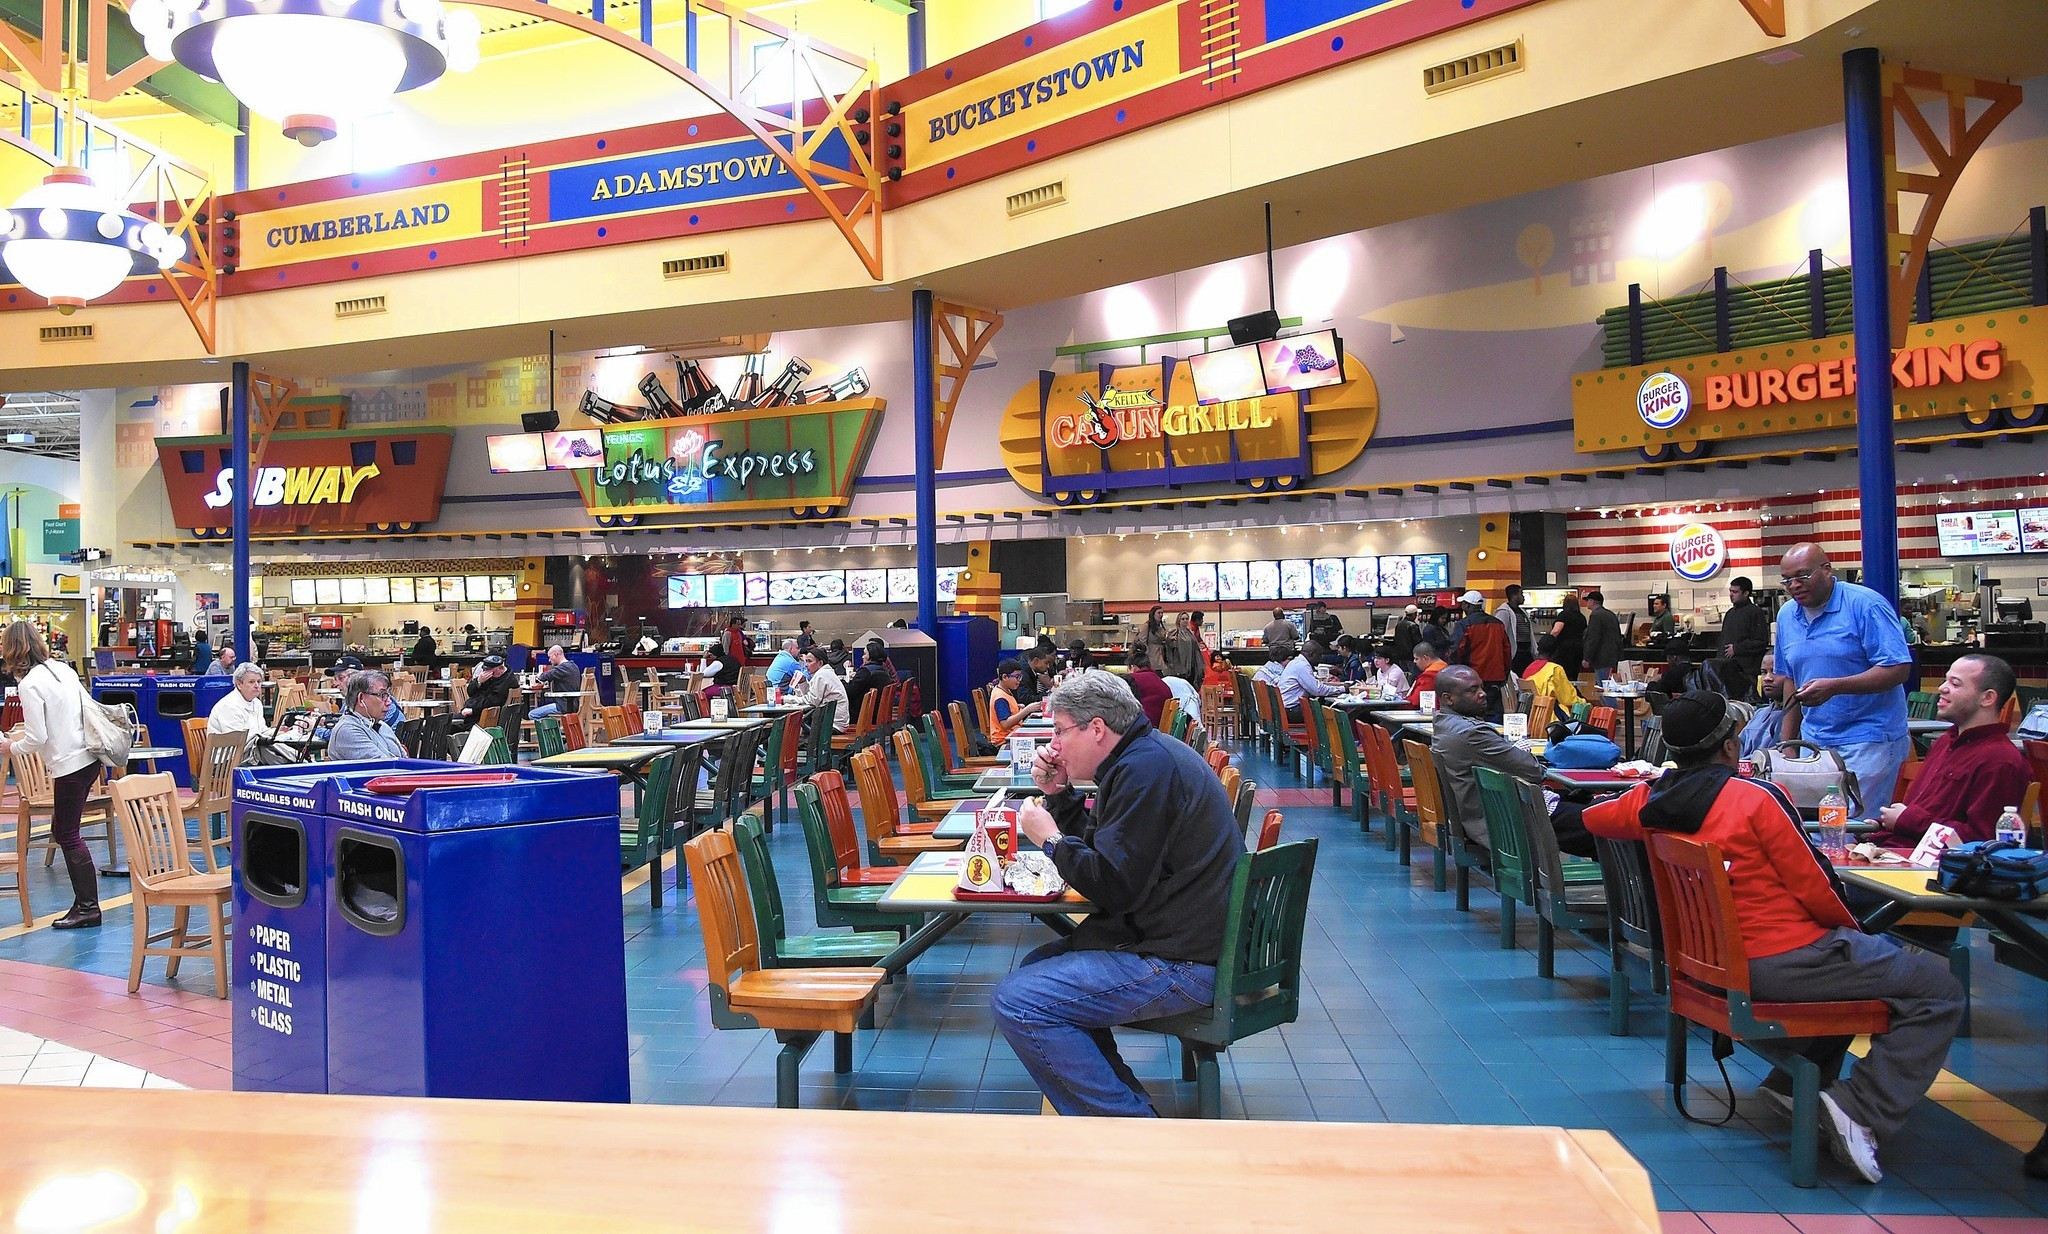 LET'S EAT. Discover an exciting selection of dining options including Buffalo Wild Wings, Dave and Buster's, DuClaw Brewing Company and more. CHECK IT OUT.